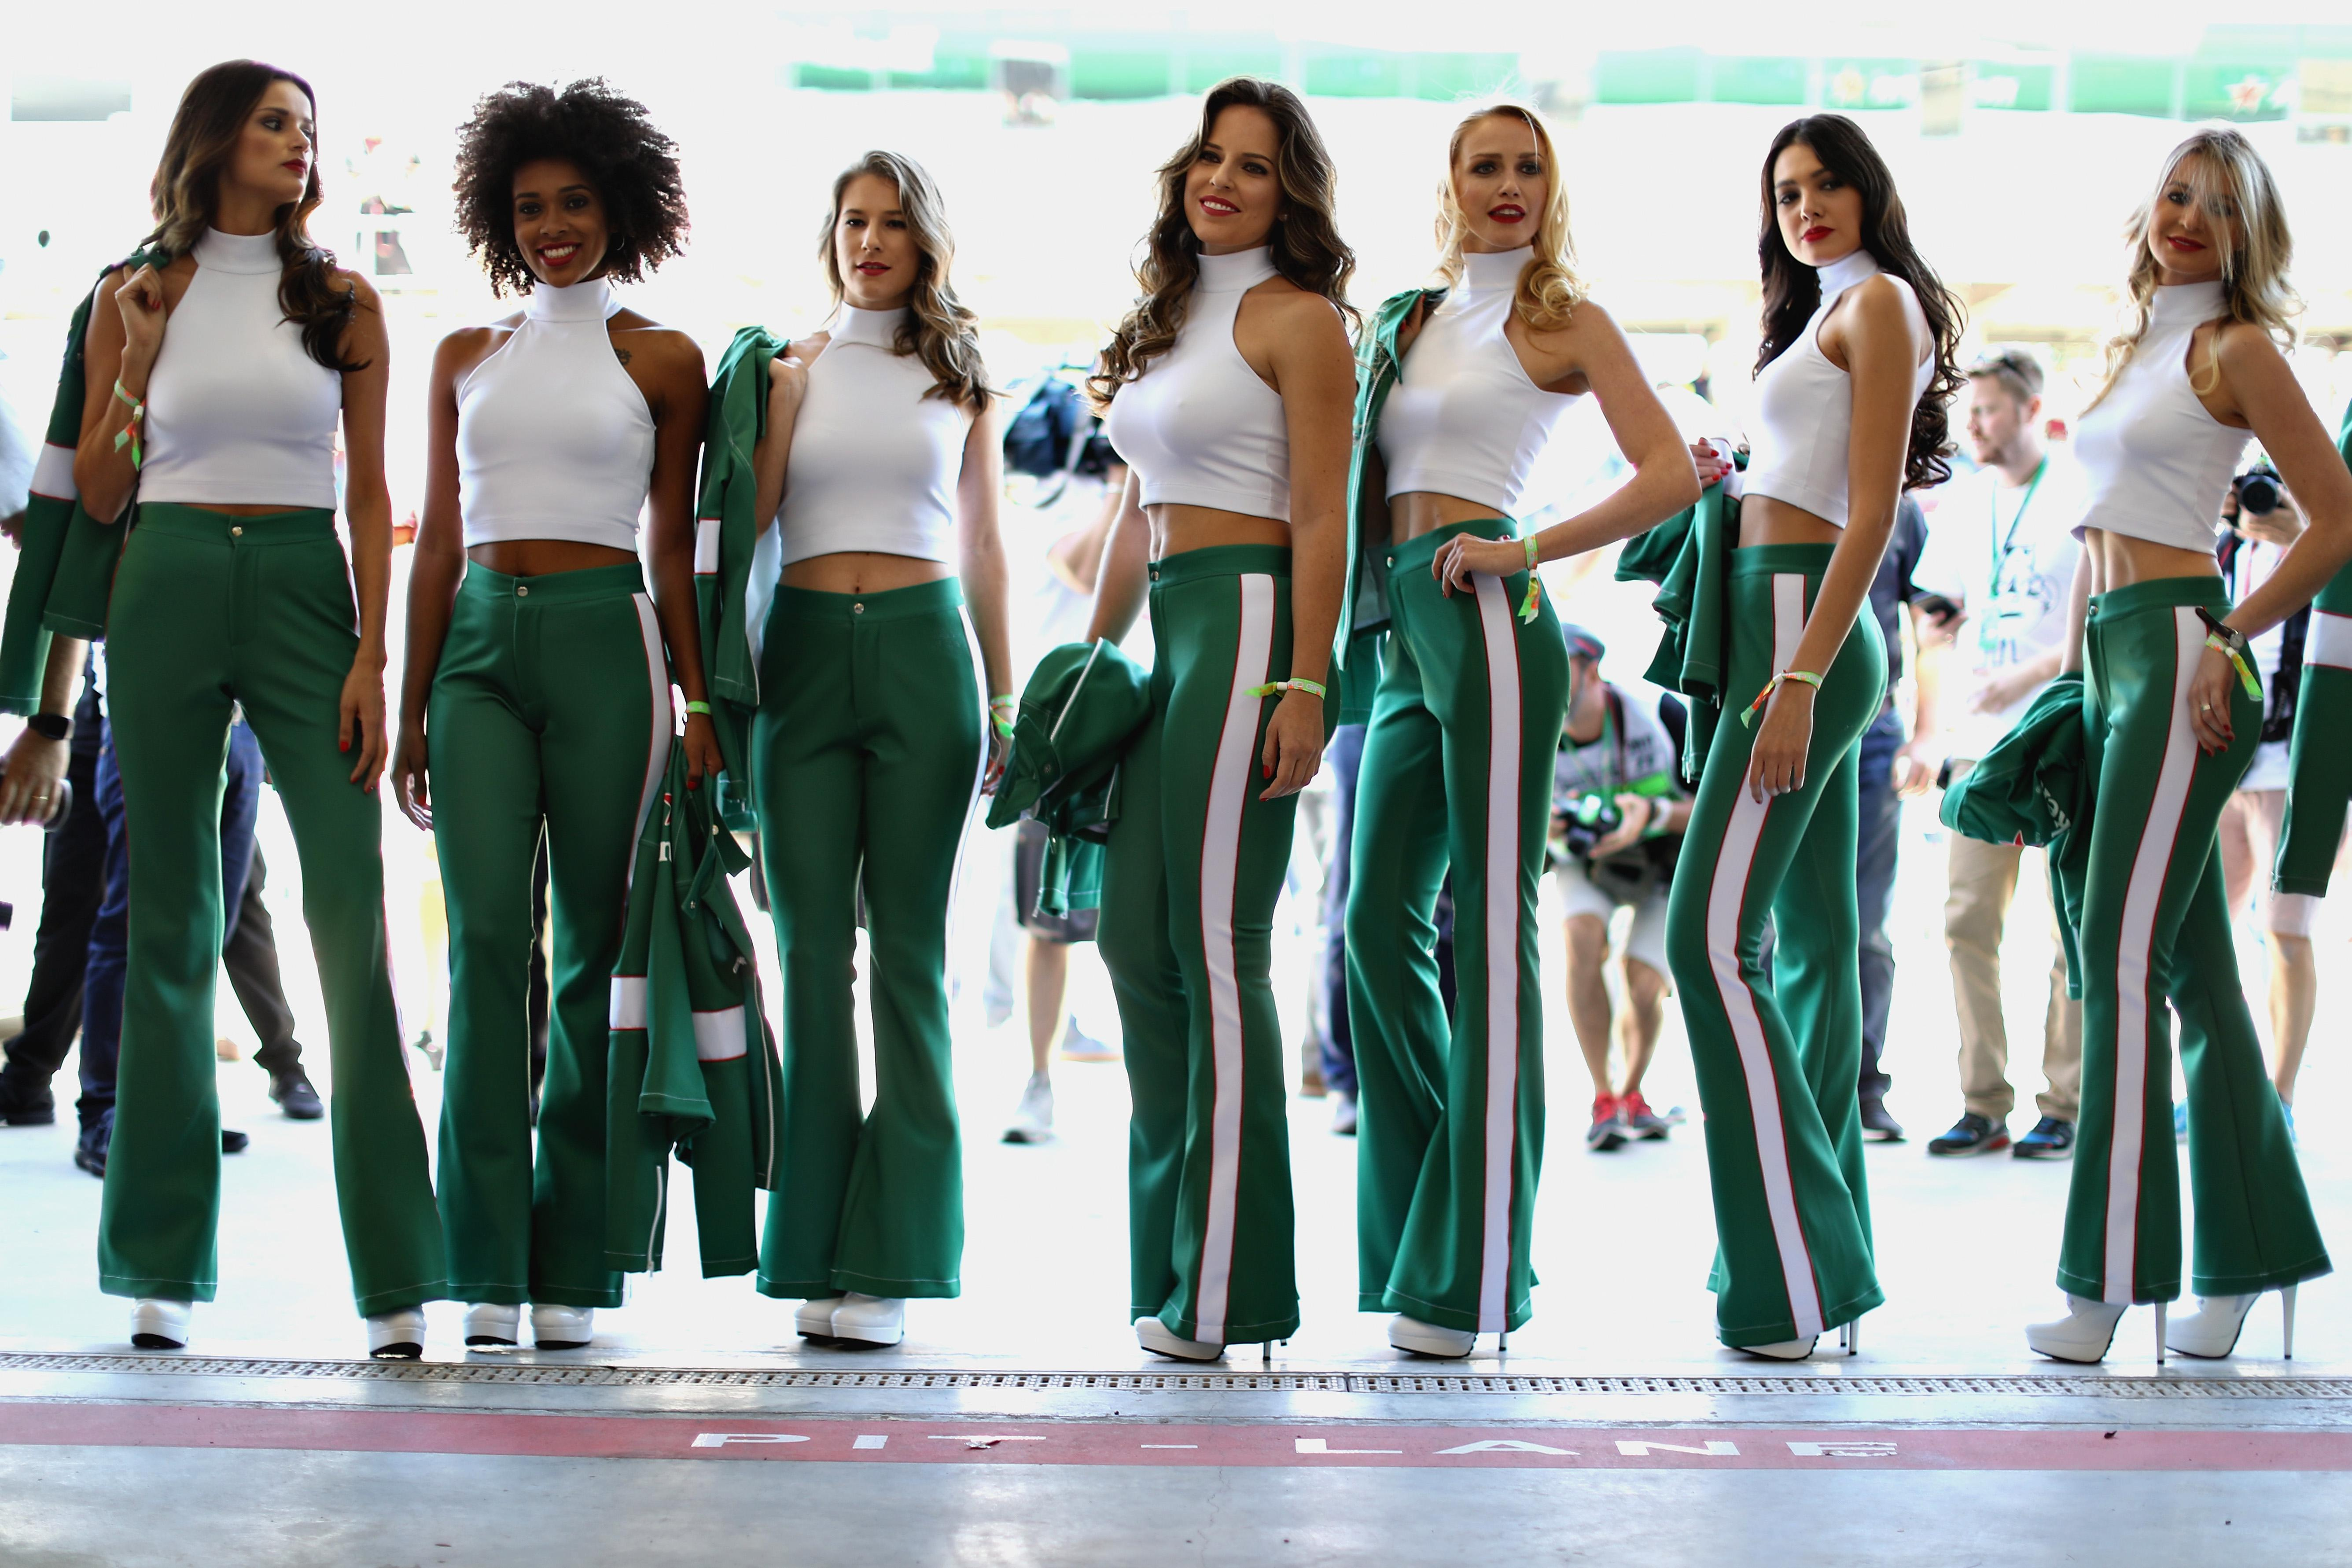 F1 have replaced 'grid girls' with 'grid kids' for this season